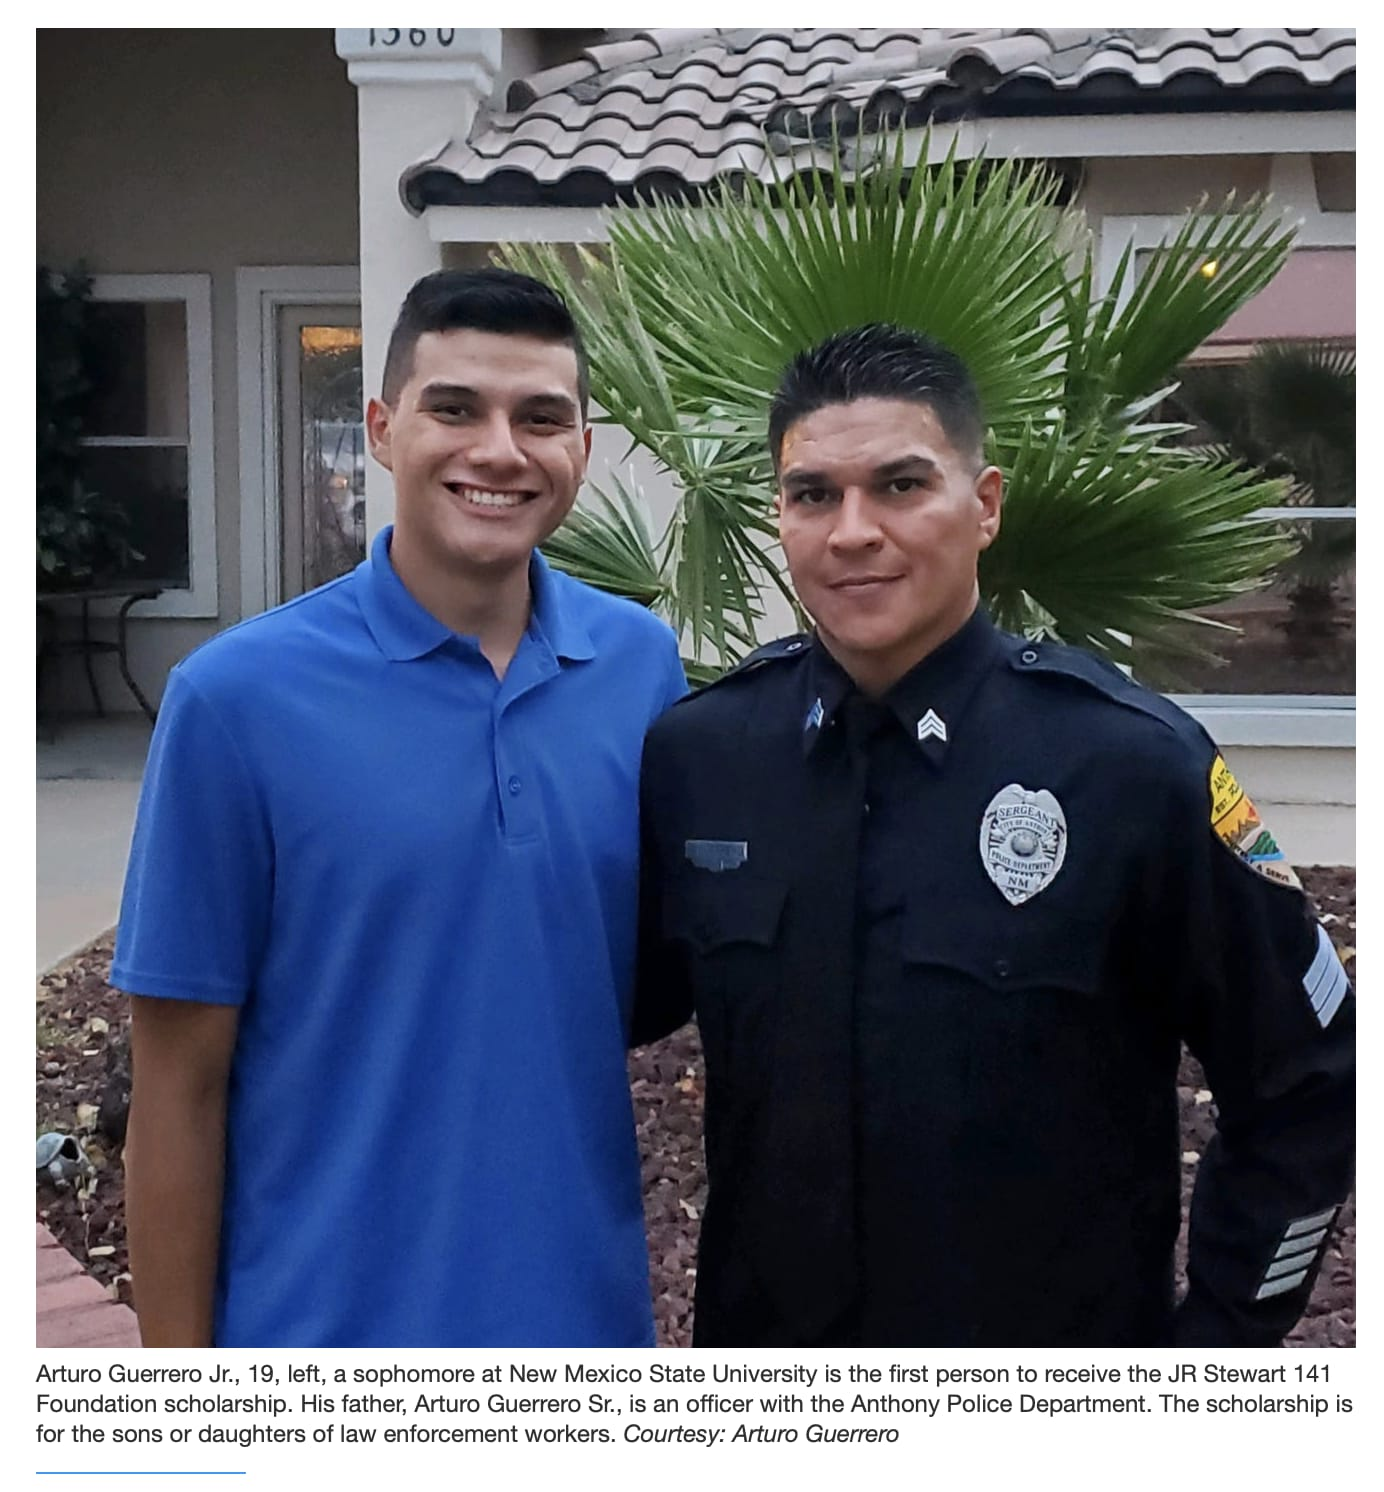 Son of Anthony police officer awarded first J.R. Stewart scholarship